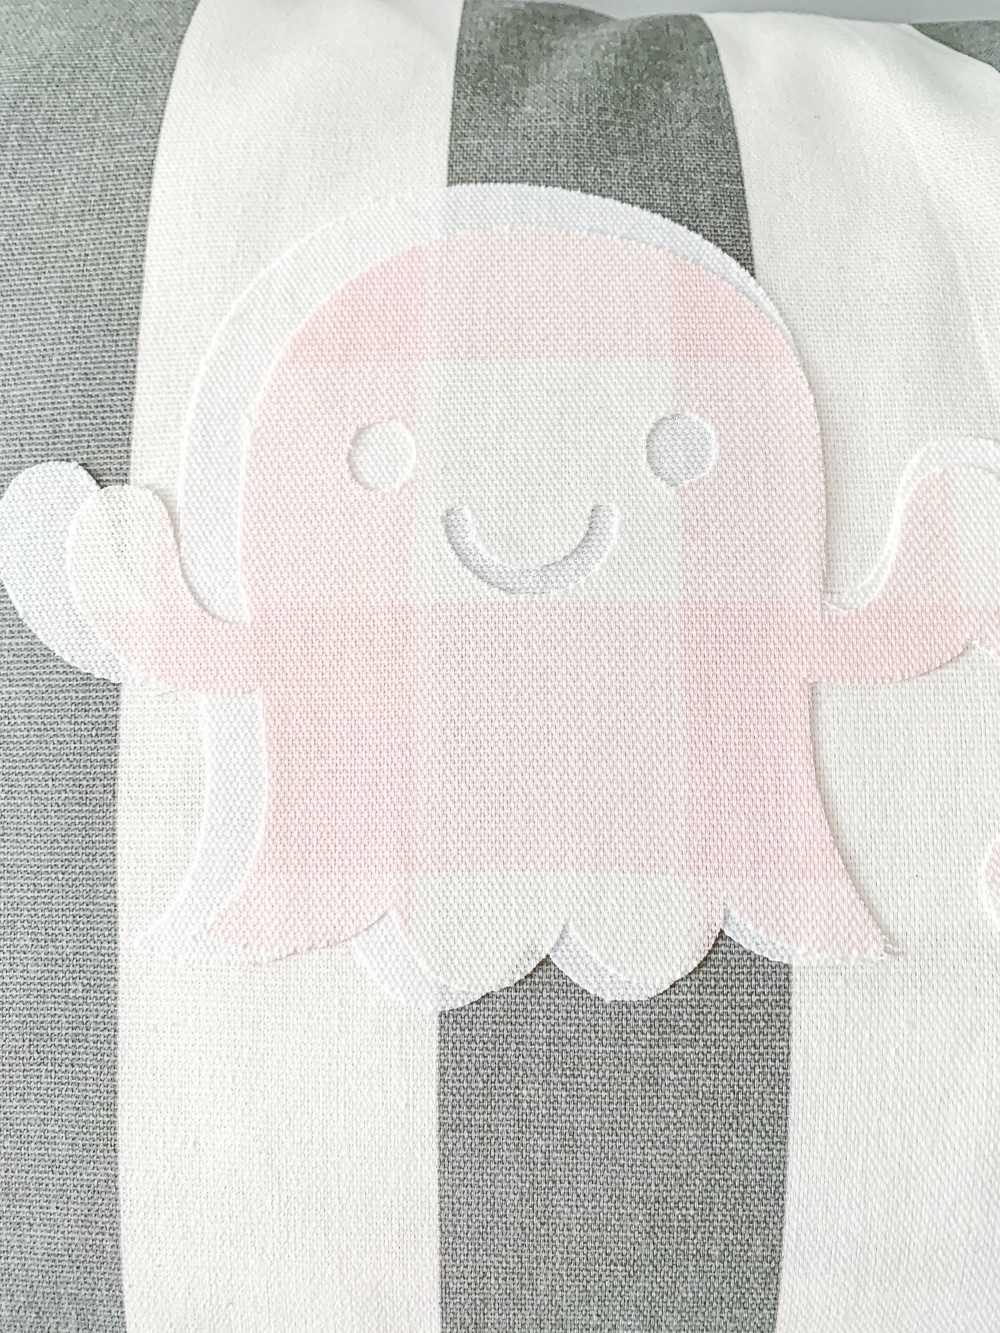 pink and white ghost applique